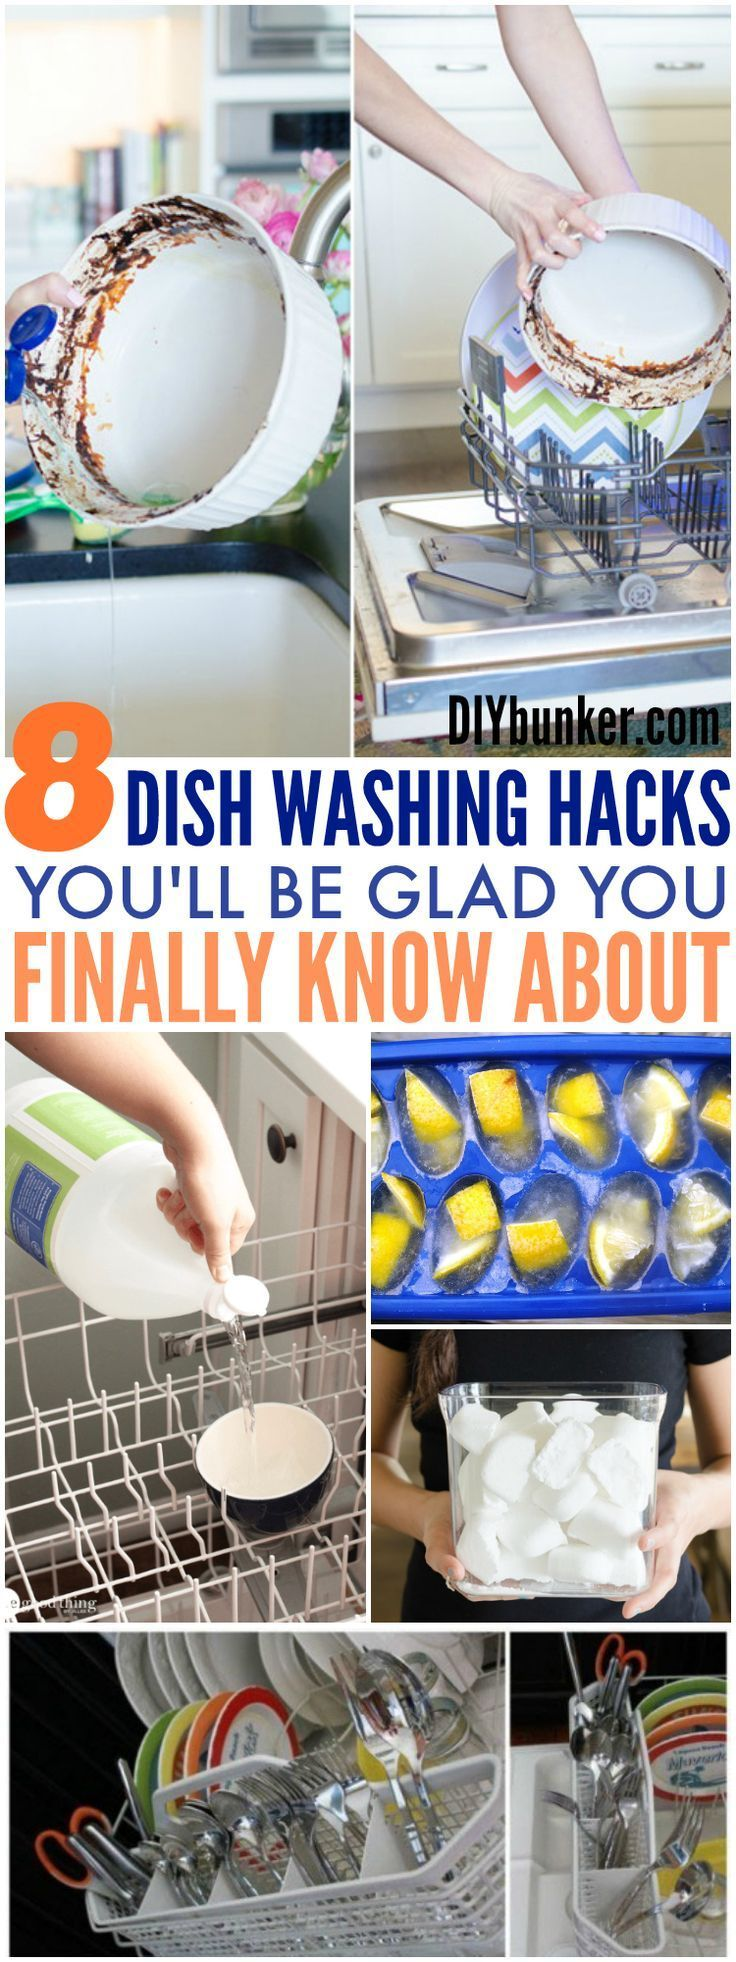 These 8 Dish Washing Hacks Will Make Your Life So Much EASIER! I love the blender trick so much as I make a bunch of smoothies!